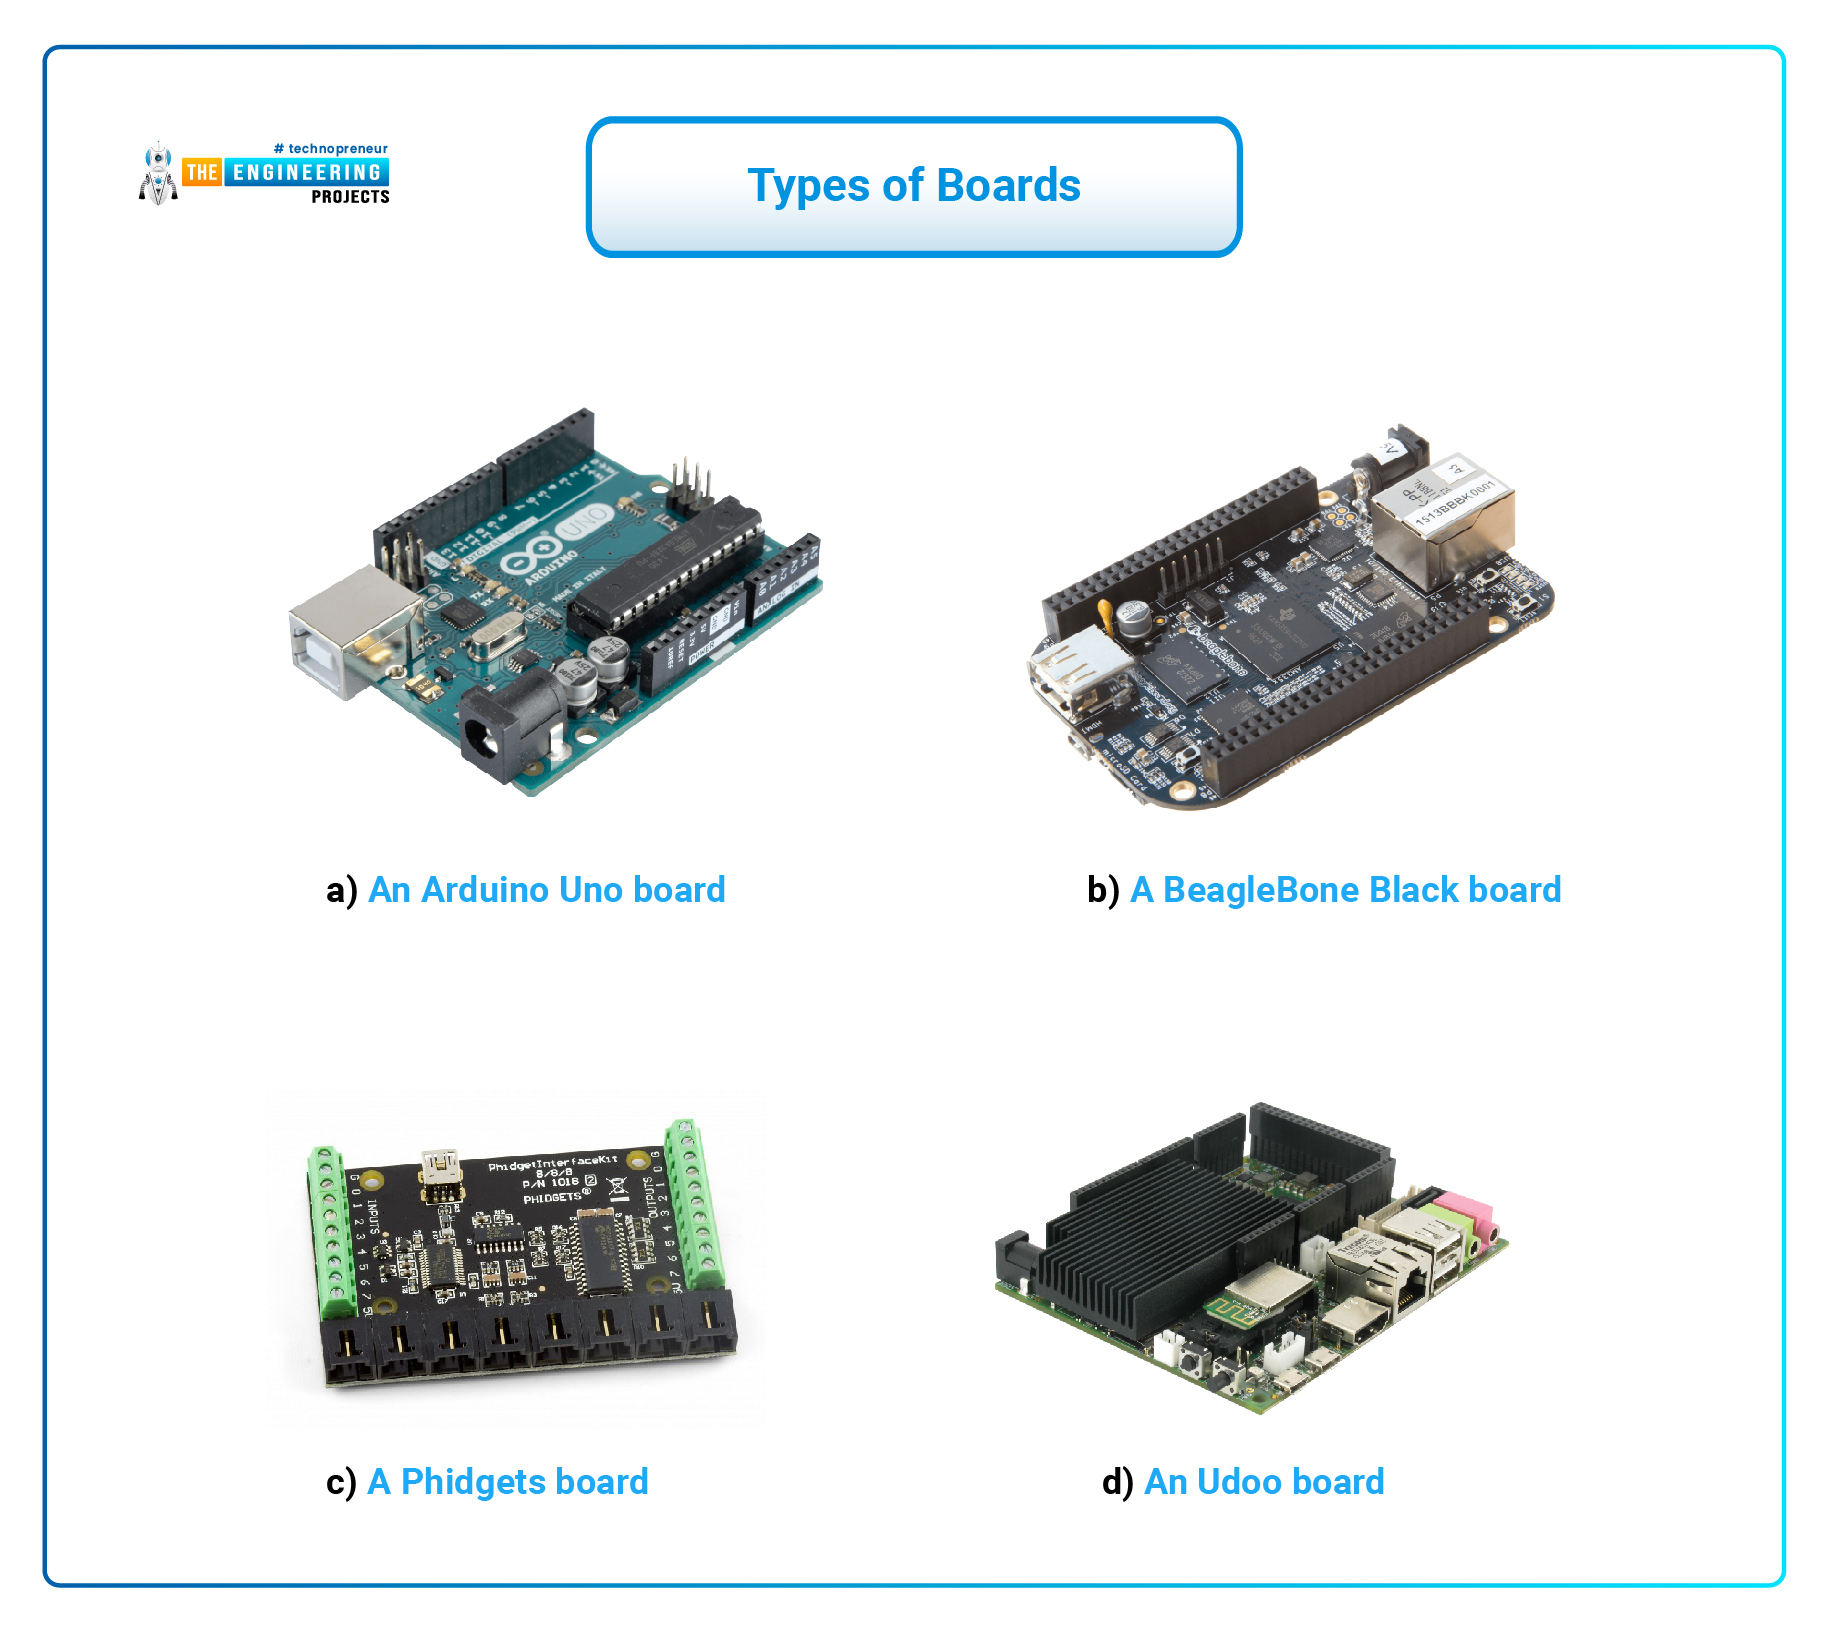 Raspberry Pi as Internet of Things, Raspberry Pi as iot, Raspberry Pi iot, iot raspberry pi, pi in iot projects